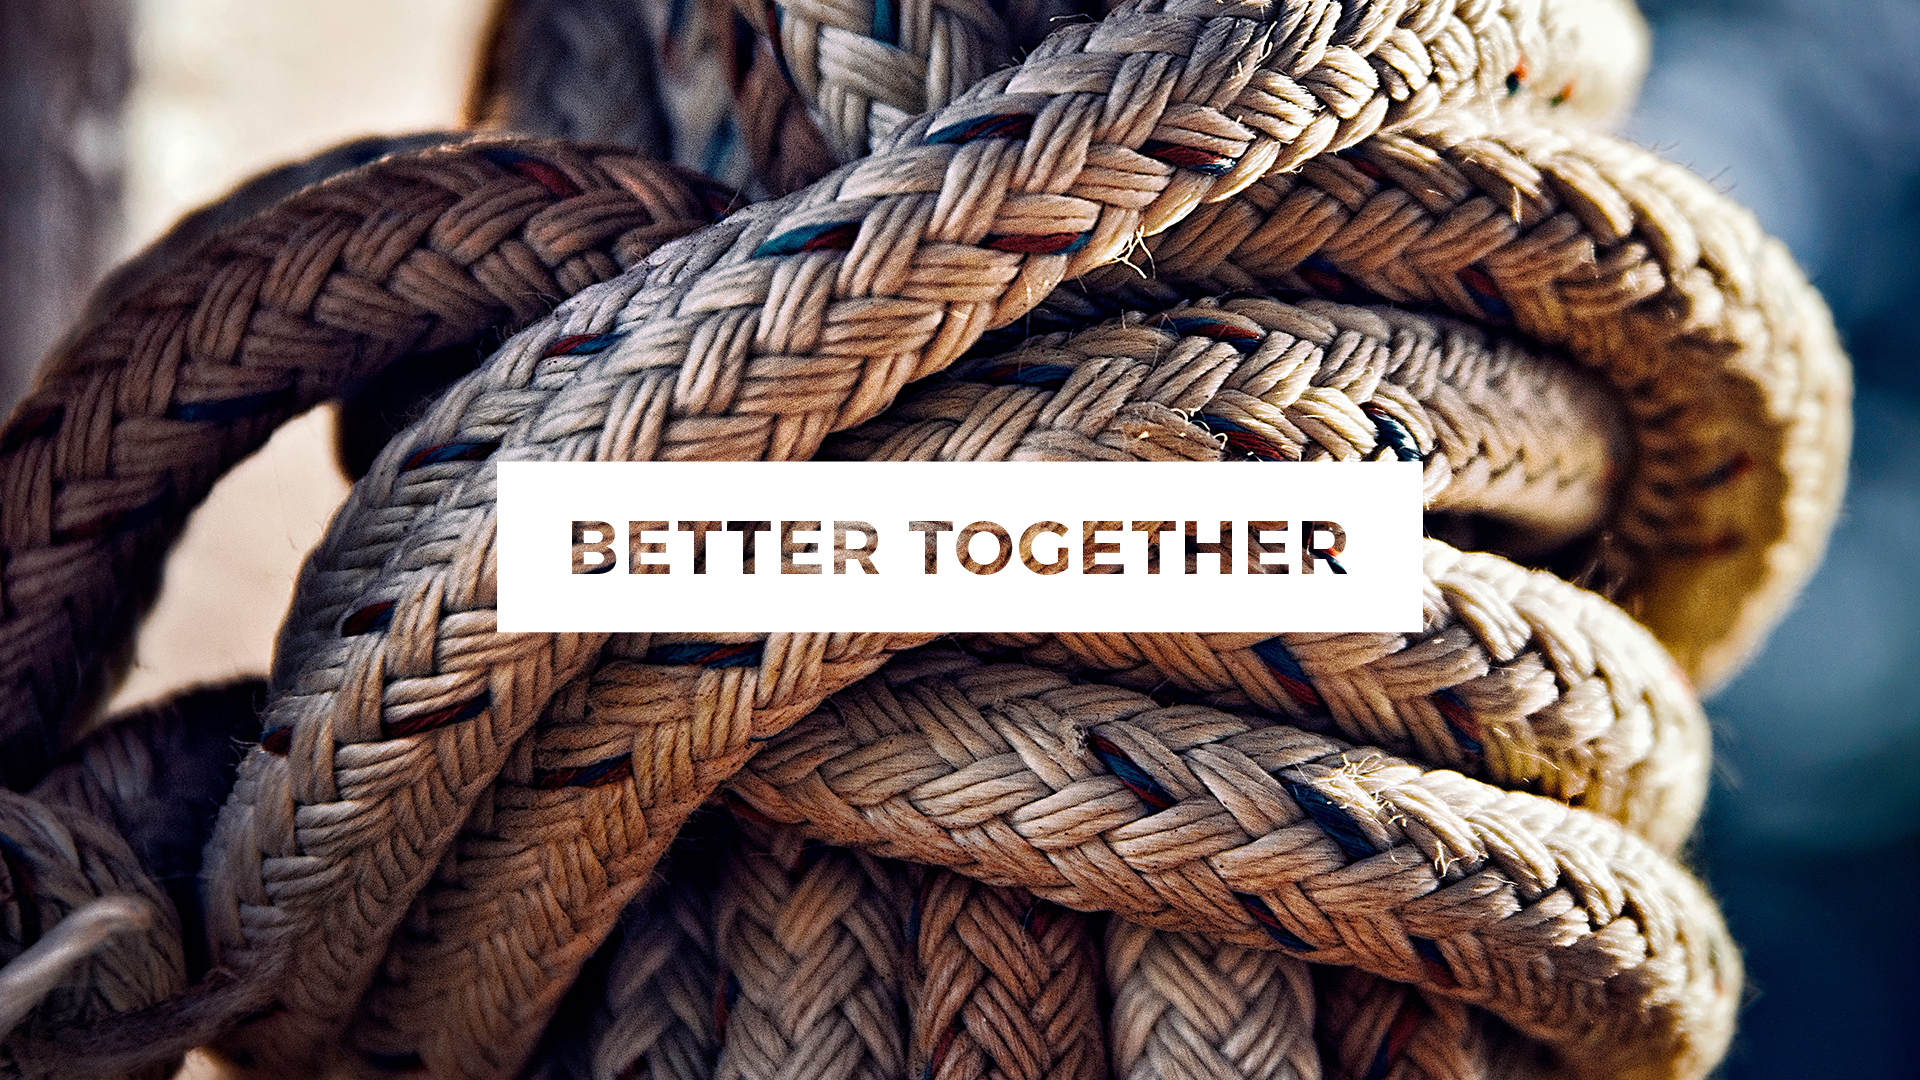 Better Together - April 8 - May 6, 2018